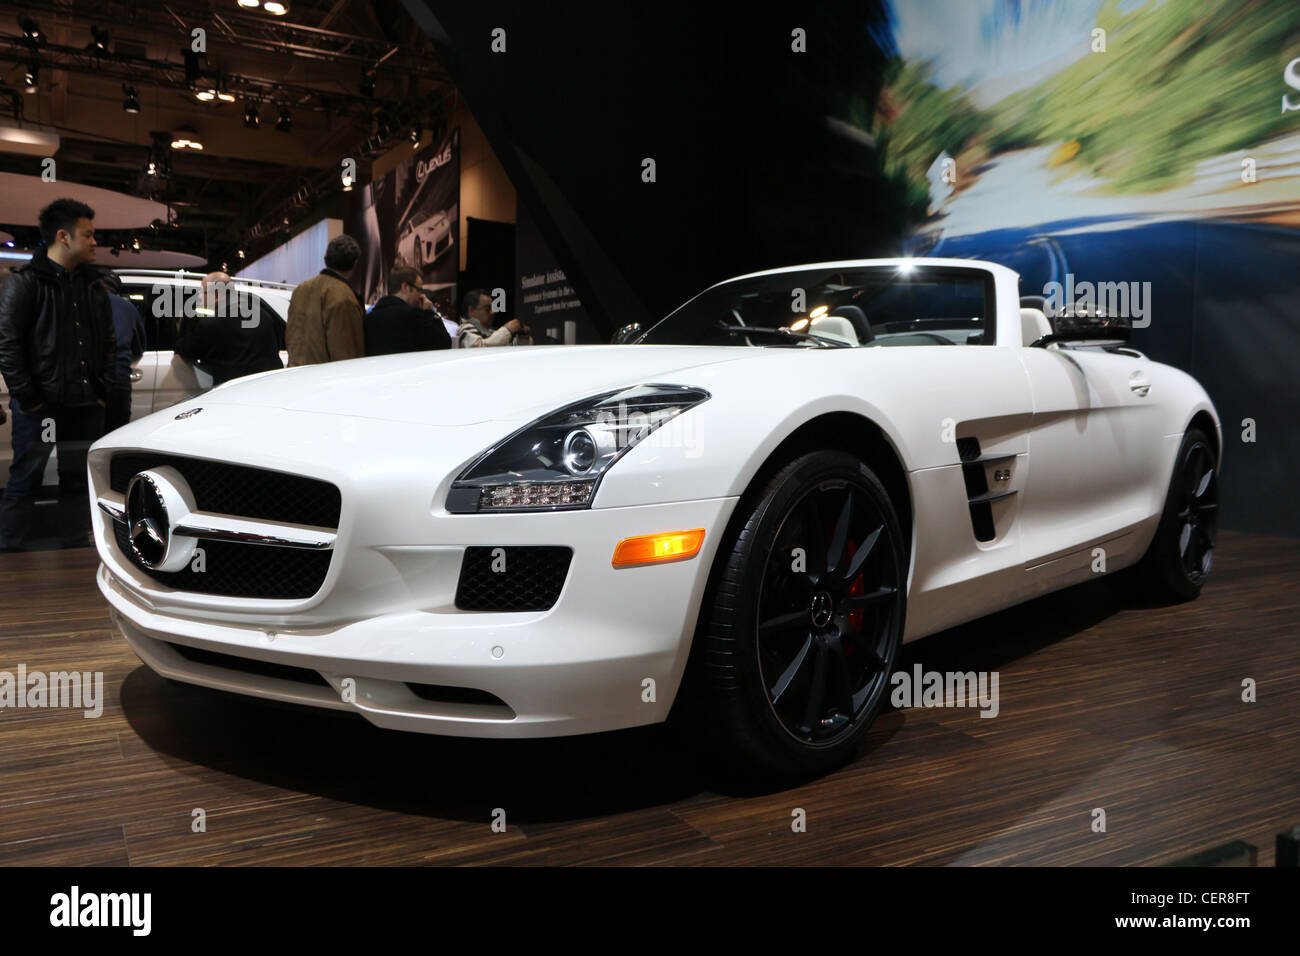 Superior White Sports Convertible Car Mercedes Benz Sls Amg Roadster